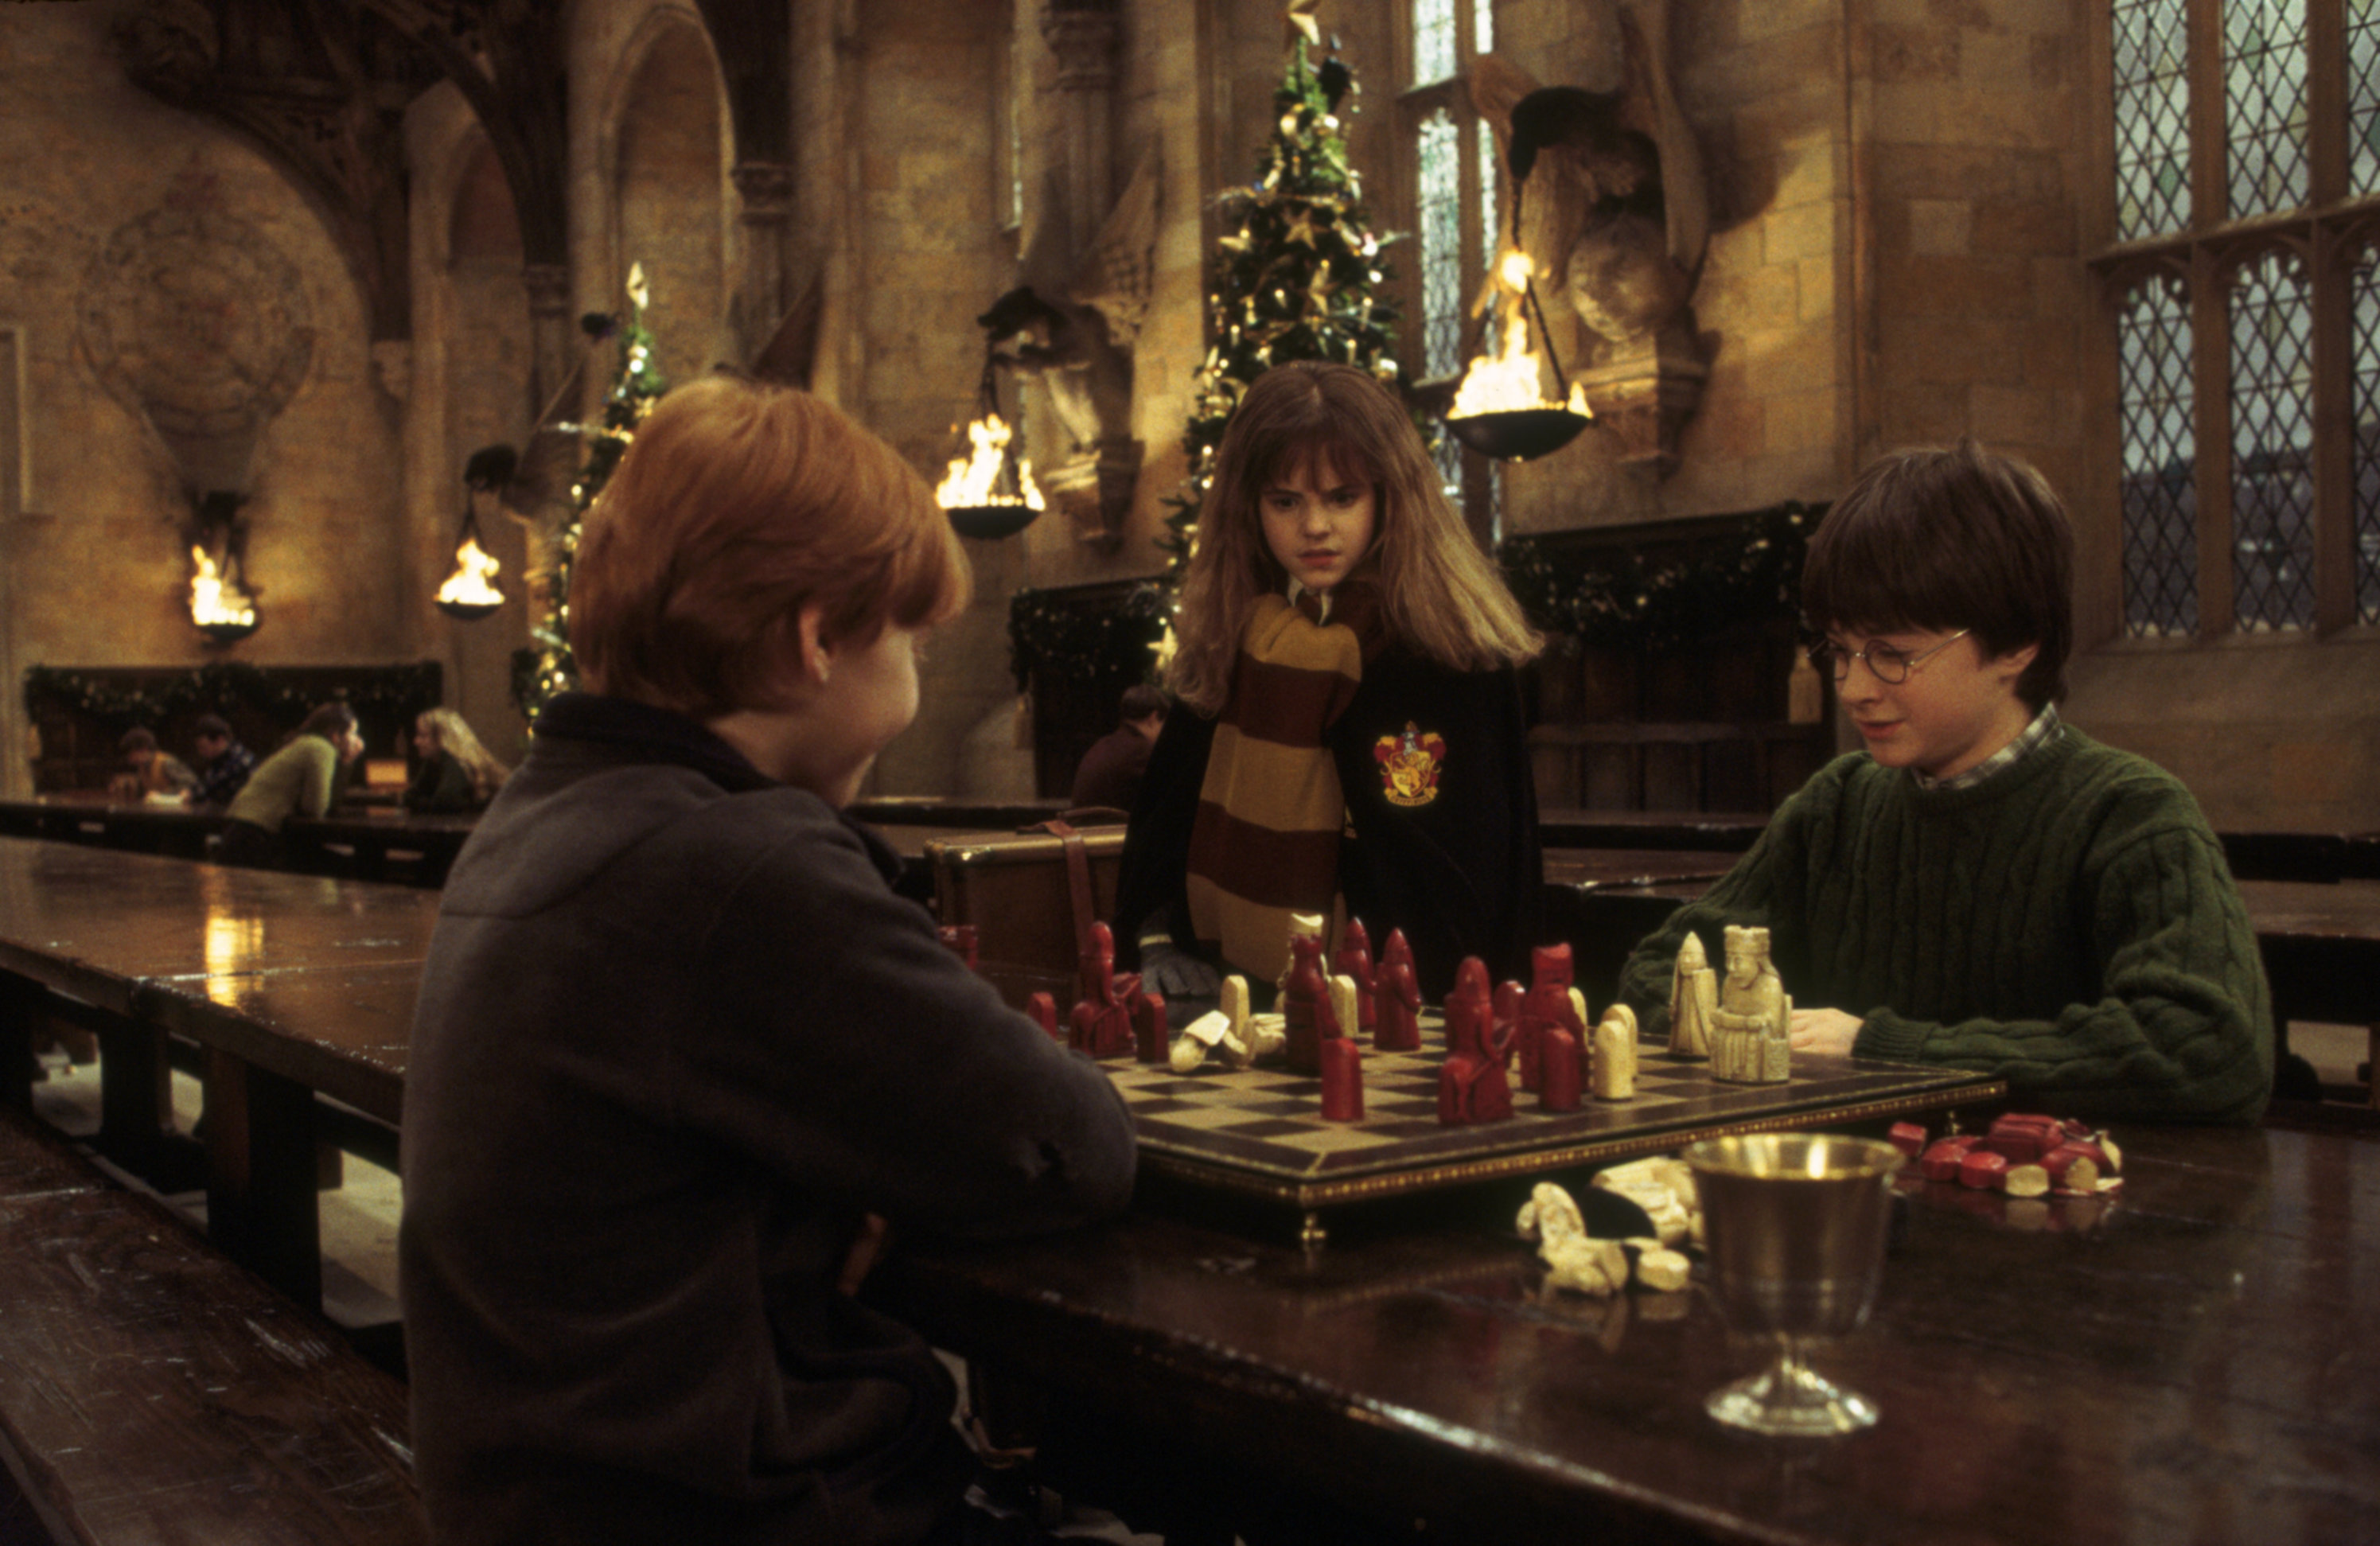 Harr Potter chess game